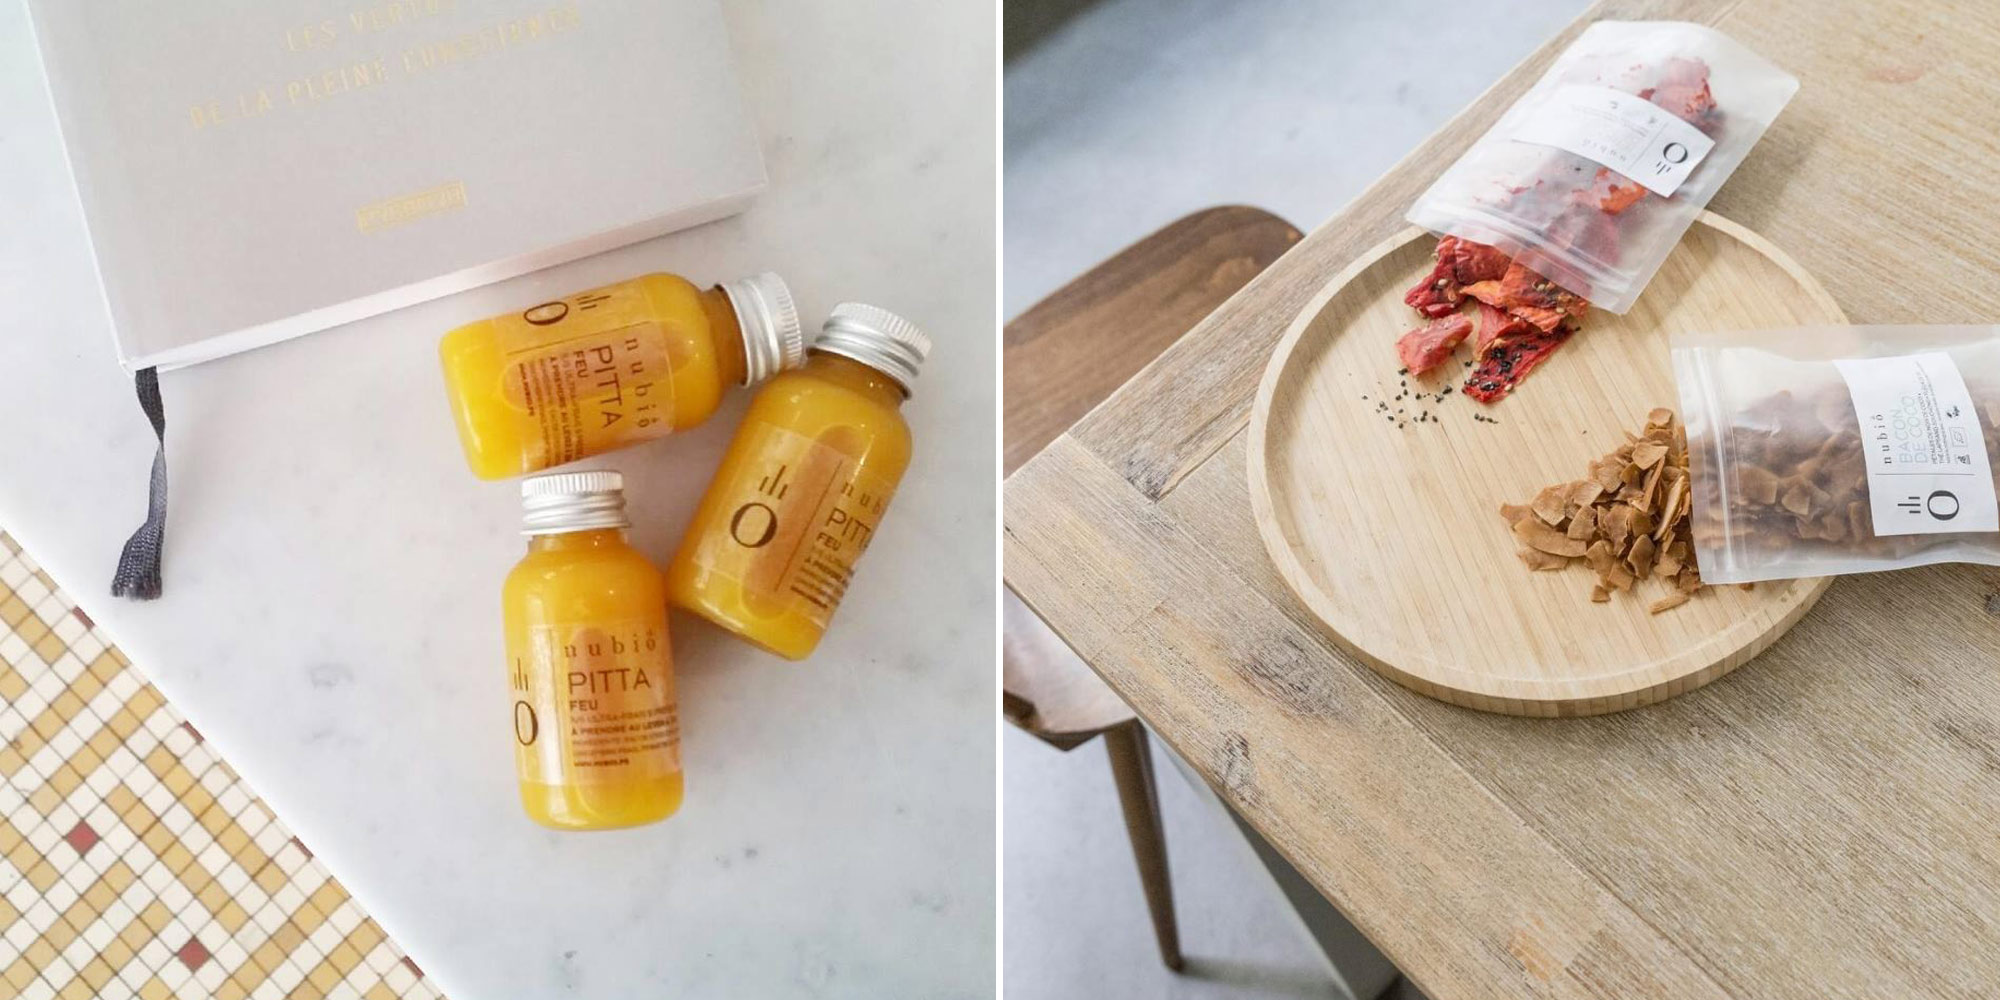 HiP Paris Blog explores healthy living in Paris with a juice detox diet from Atelier Nubio. Three bottles of fresh-pressed juices lying on a marble table above a tiled floor (left). Open packets of dried power food on a wooden table (right).